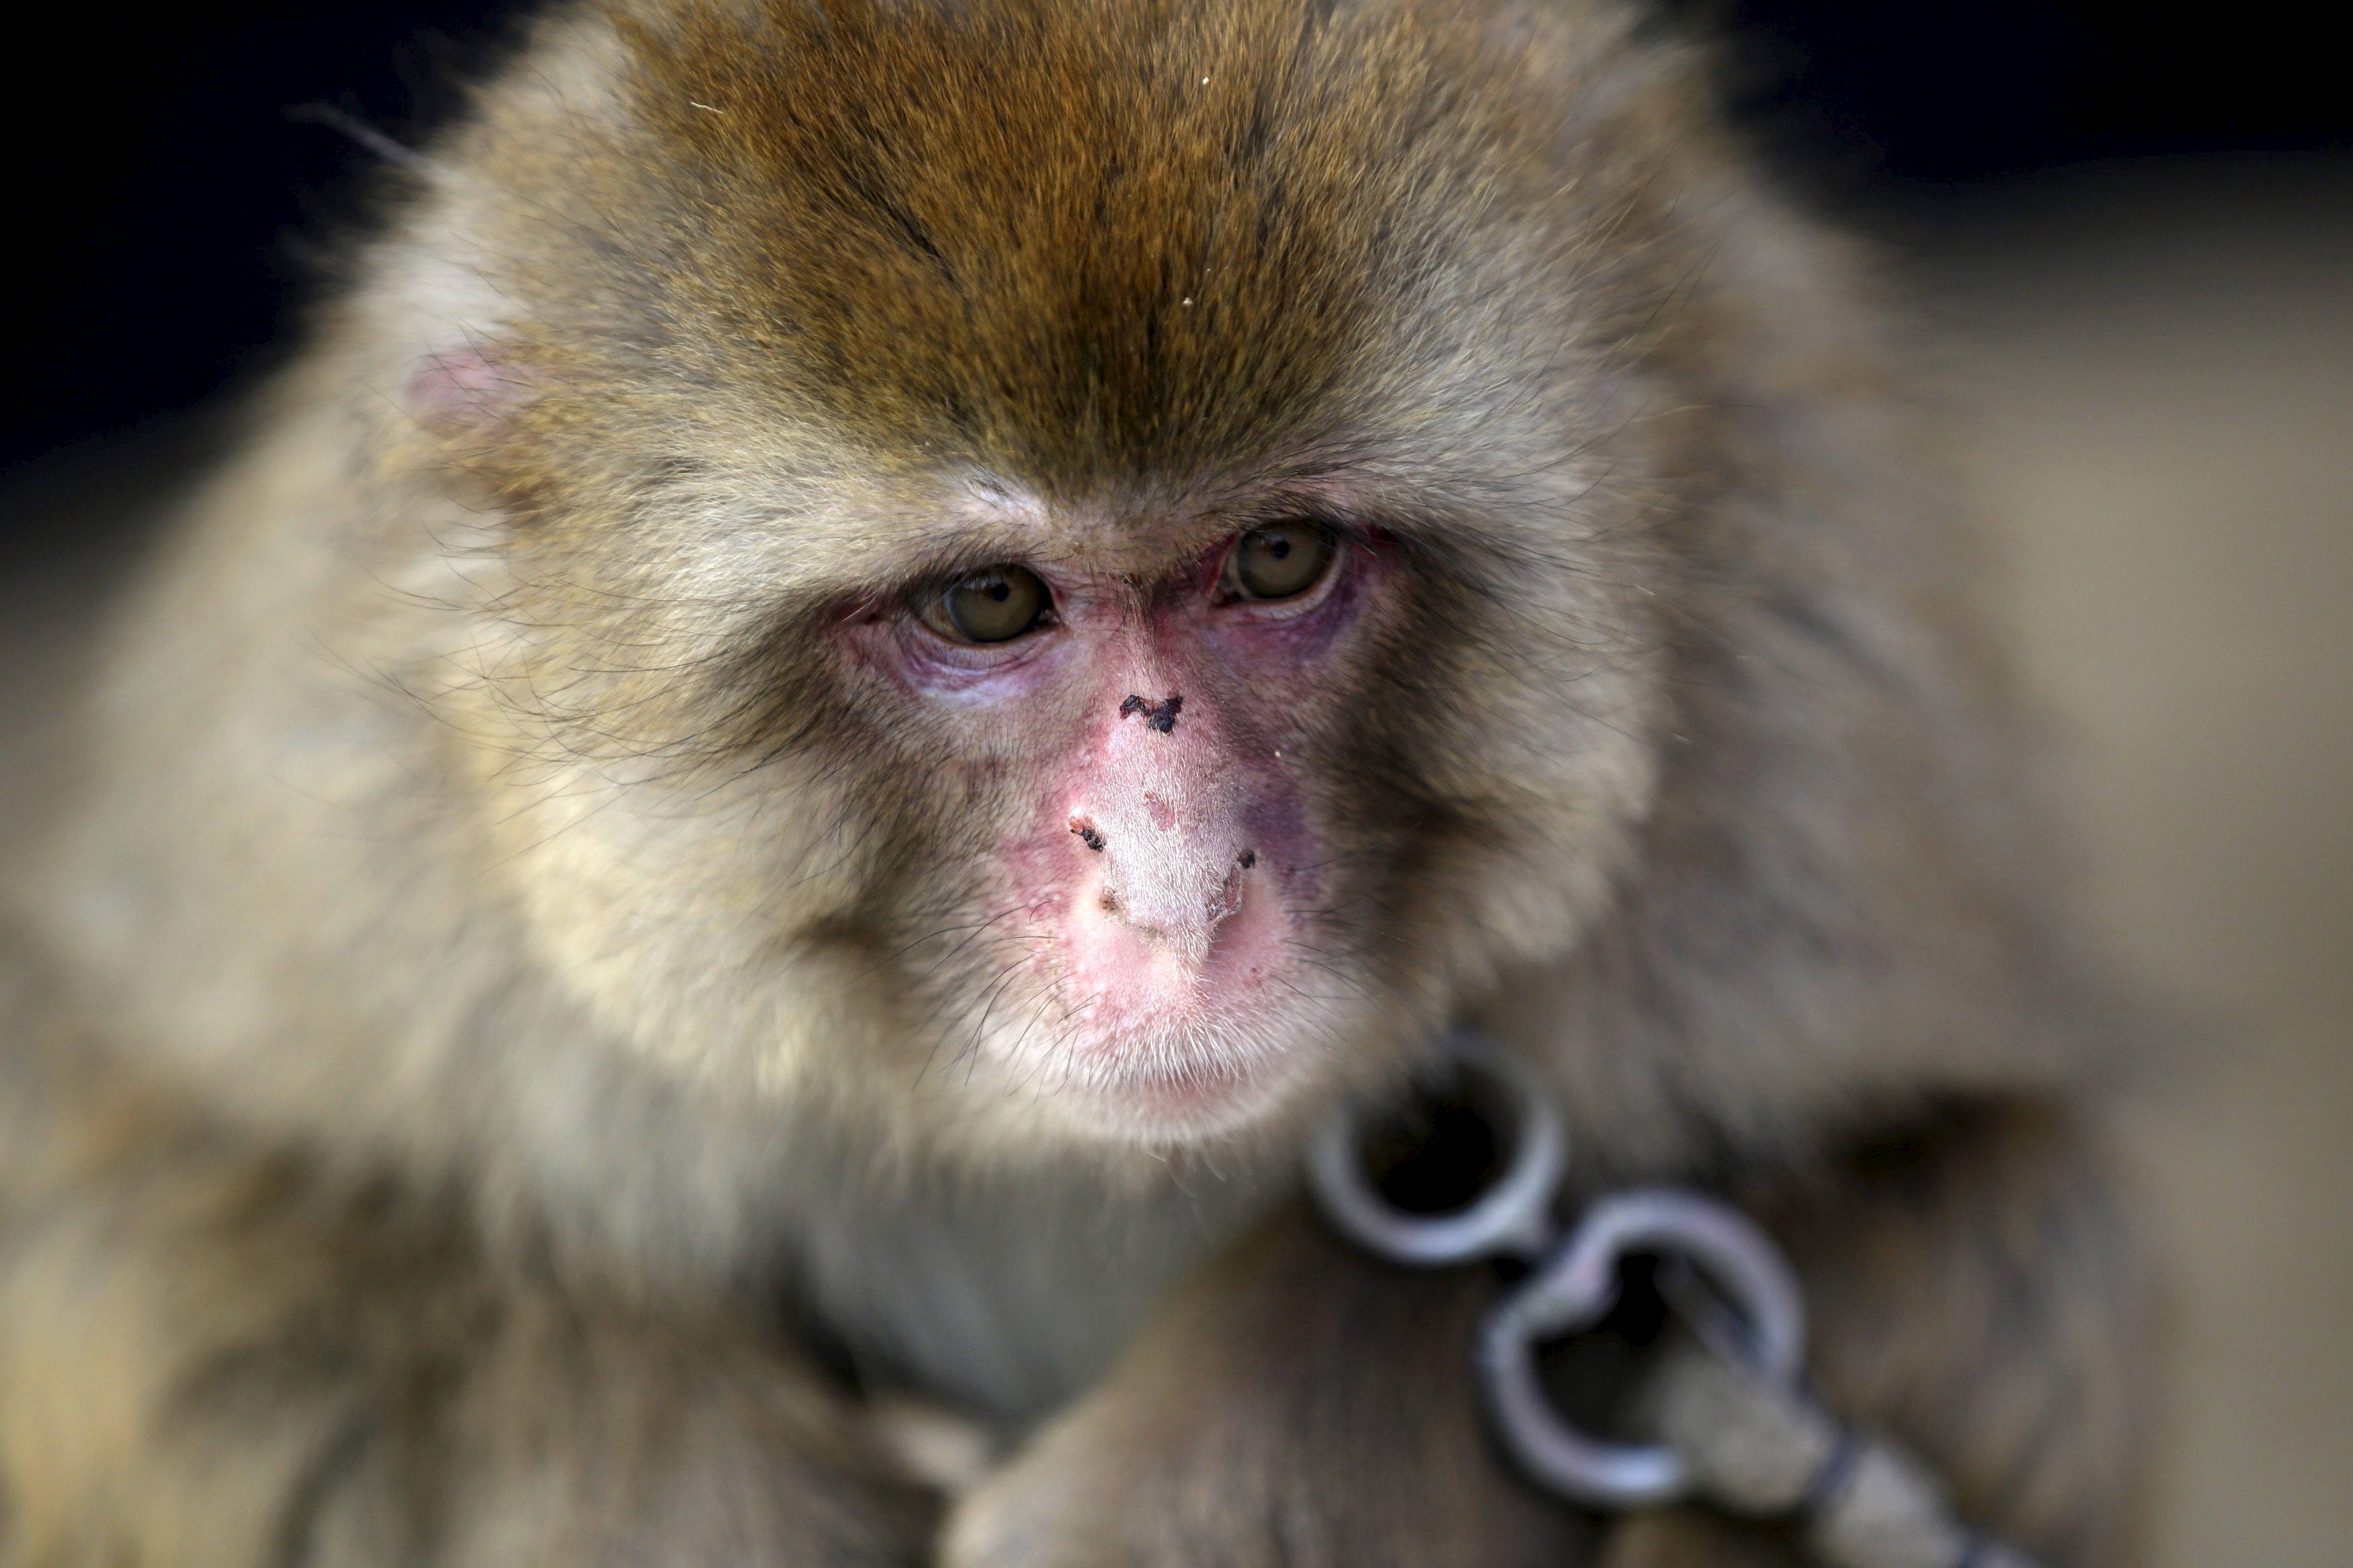 A performing monkey is seen at a monkey farm in Baowan village, Xinye county of China's central Henan province, February 2, 2016. Baowan village of China's central Henan province appears to be your average farming community from the surface, but at a closer look, one can hear monkey hoots from every direction. Although no official number exists, villagers say that they have been a breeding ground for both monkeys and monkey trainers for centuries. Picture taken on February 2, 2016. REUTERS/Jason Lee